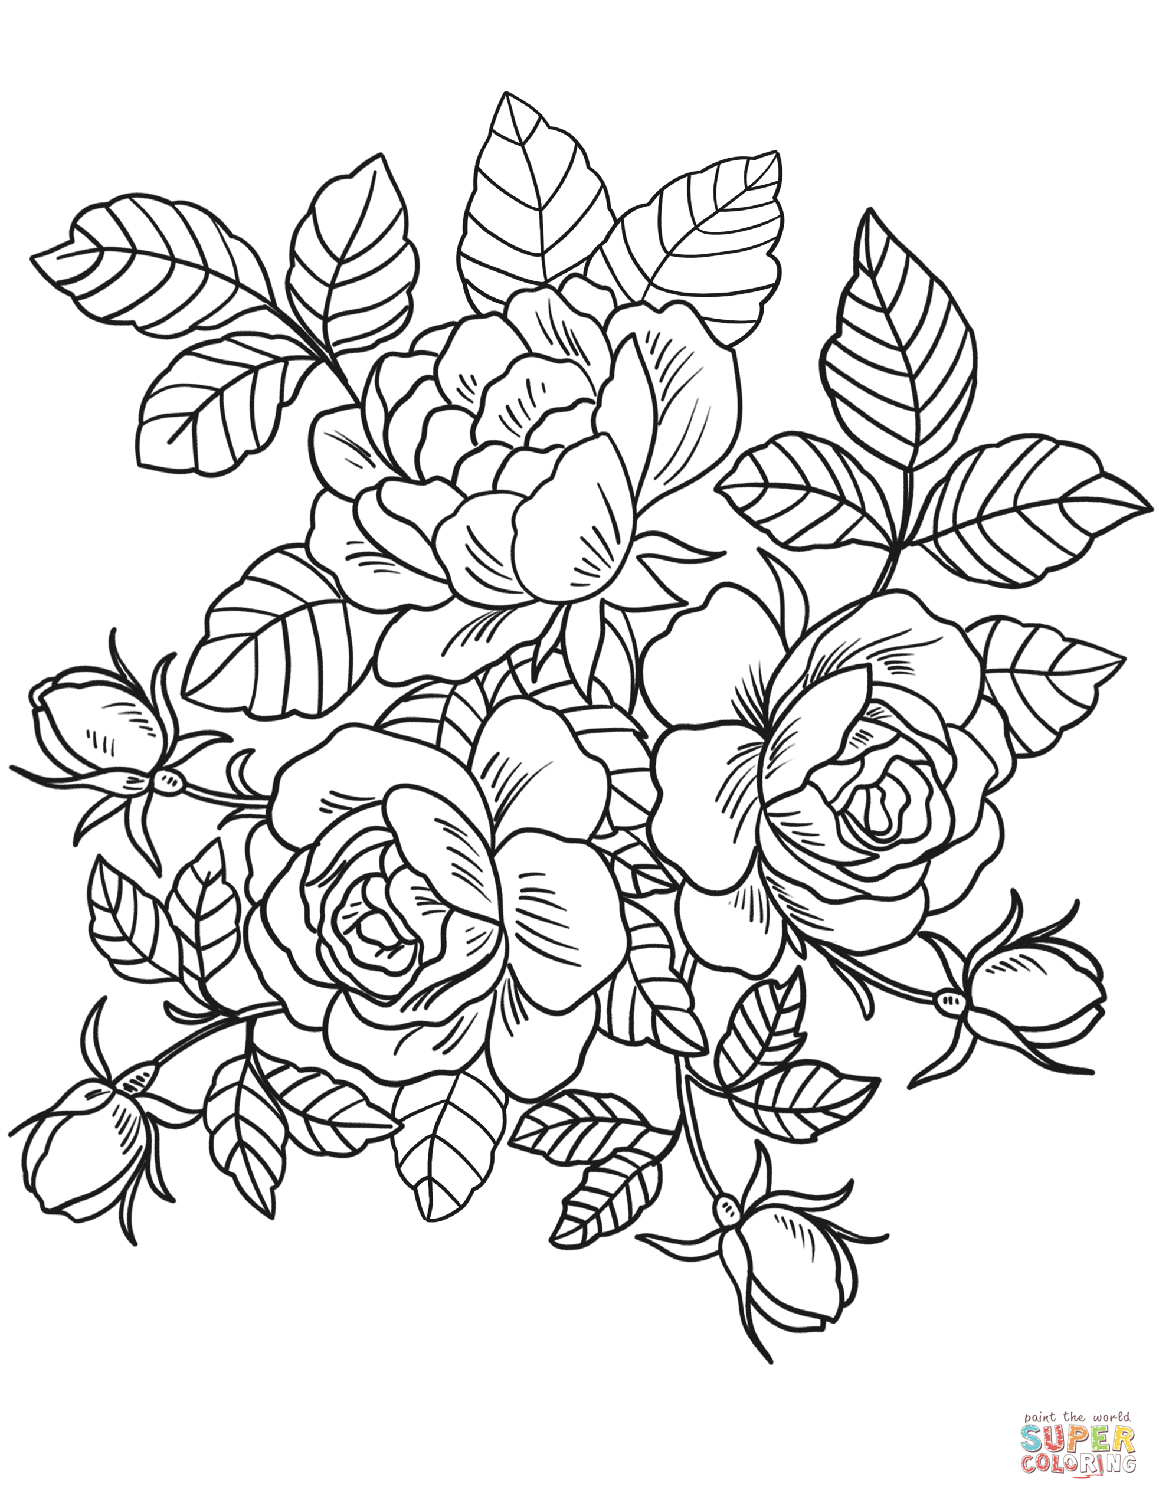 colouring pictures of flowers 10 flower coloring sheets for girls and boys all esl of pictures colouring flowers